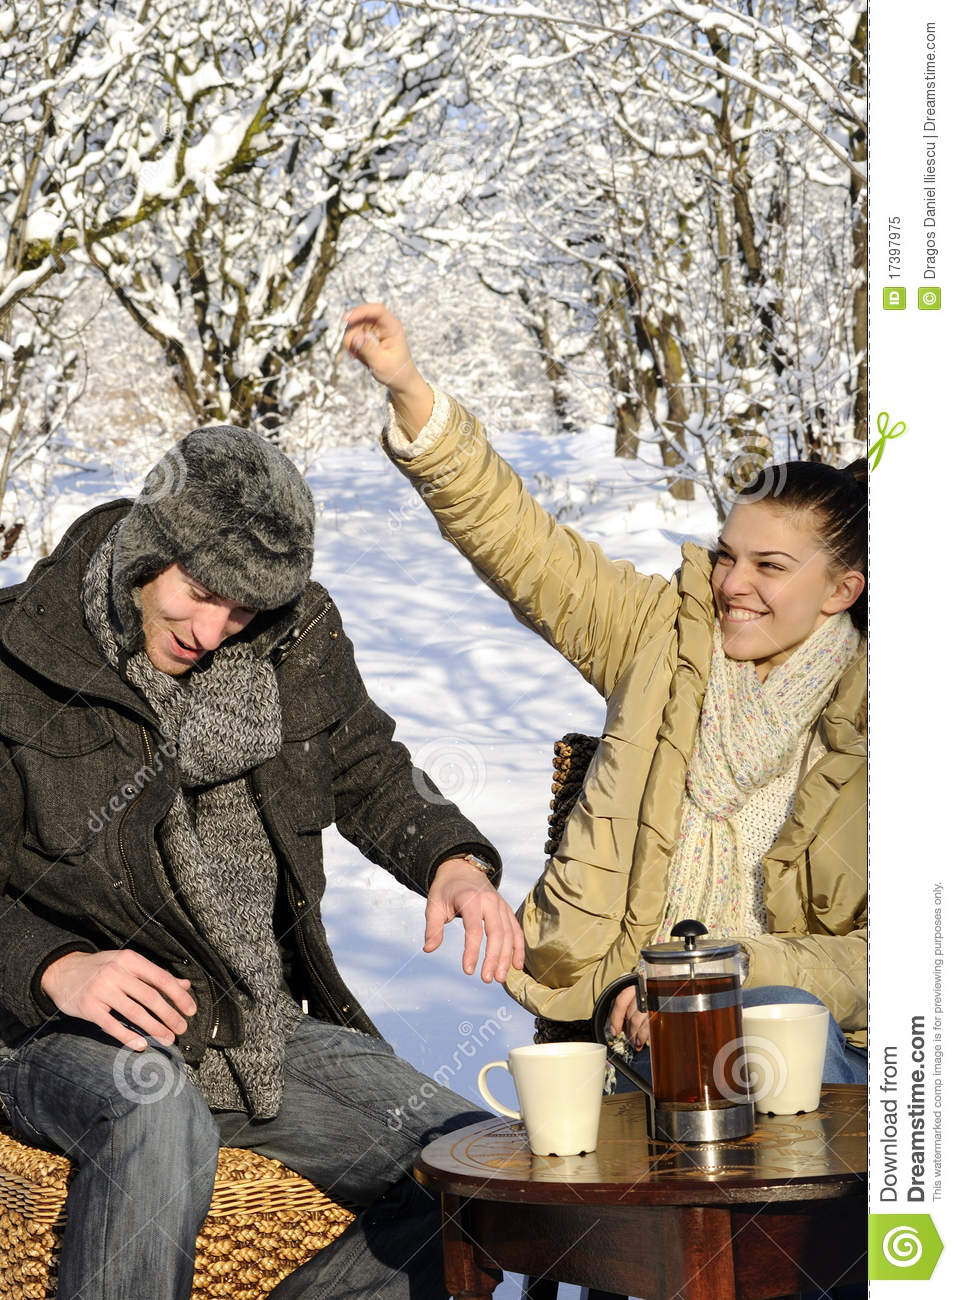 Young Man And Woman Celebrating Winter Season Cups With Tea On Table